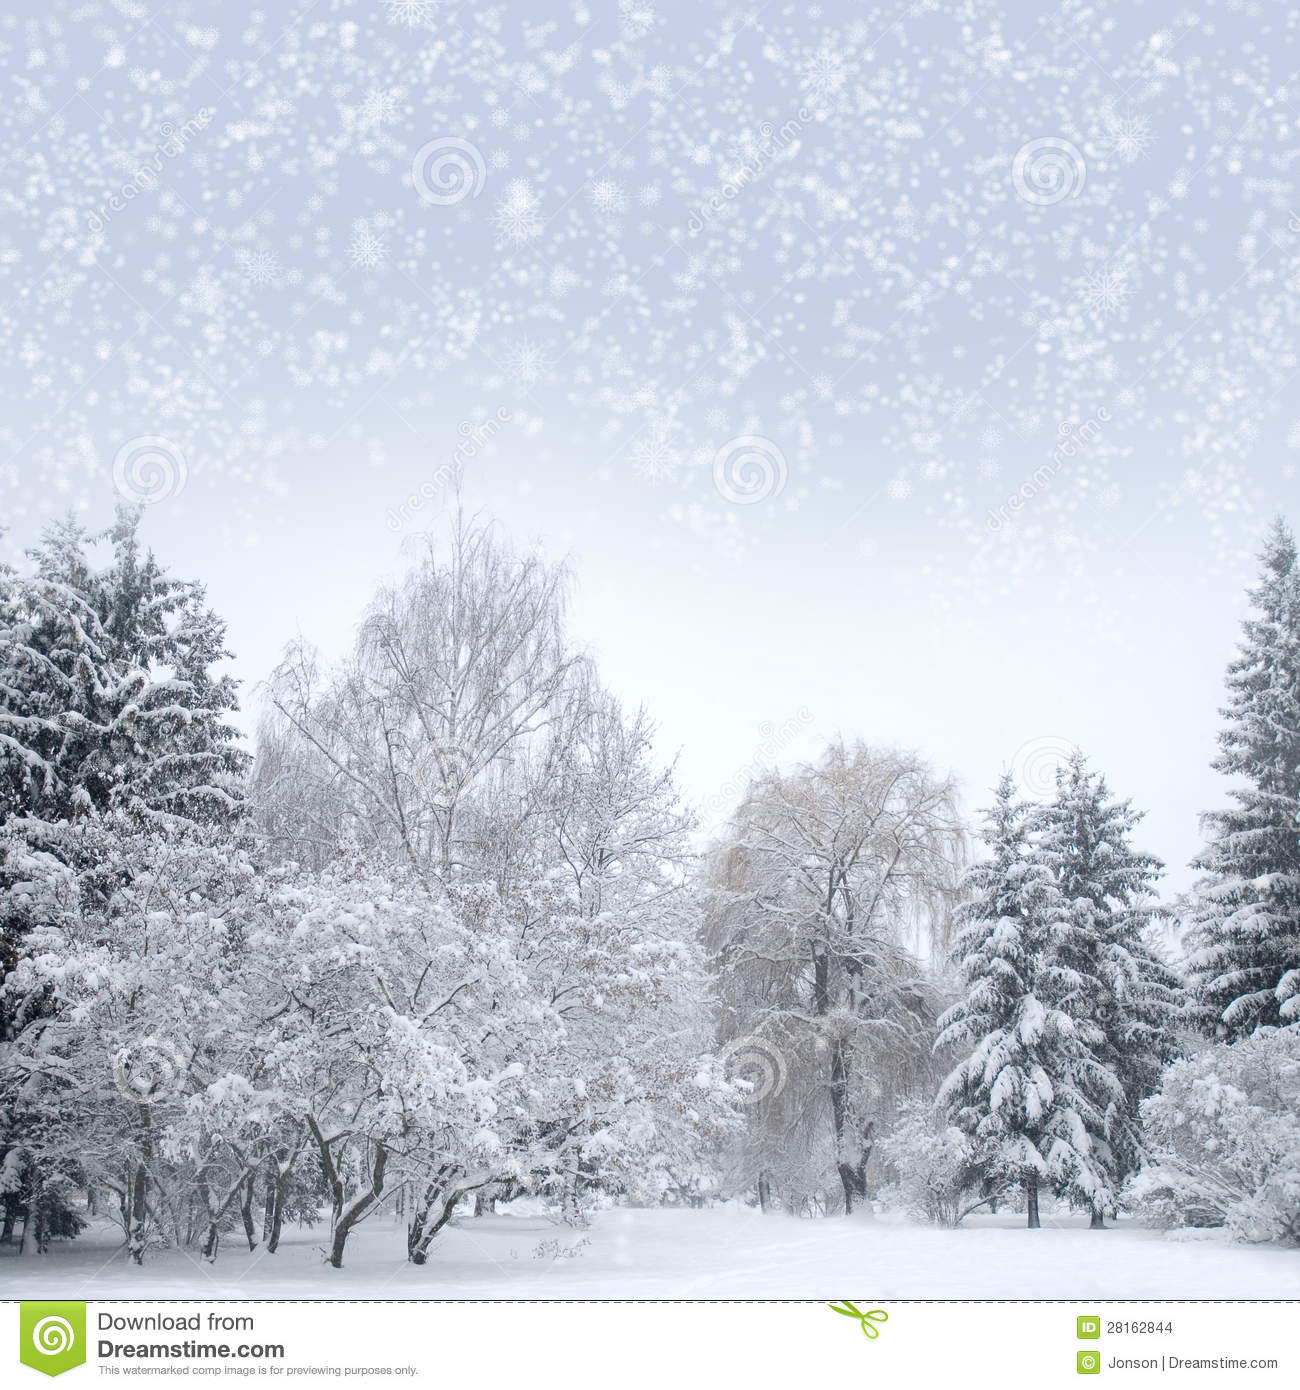 Water Falling Wallpaper Desktop White Christmas Forest With Snow Stock Images Image